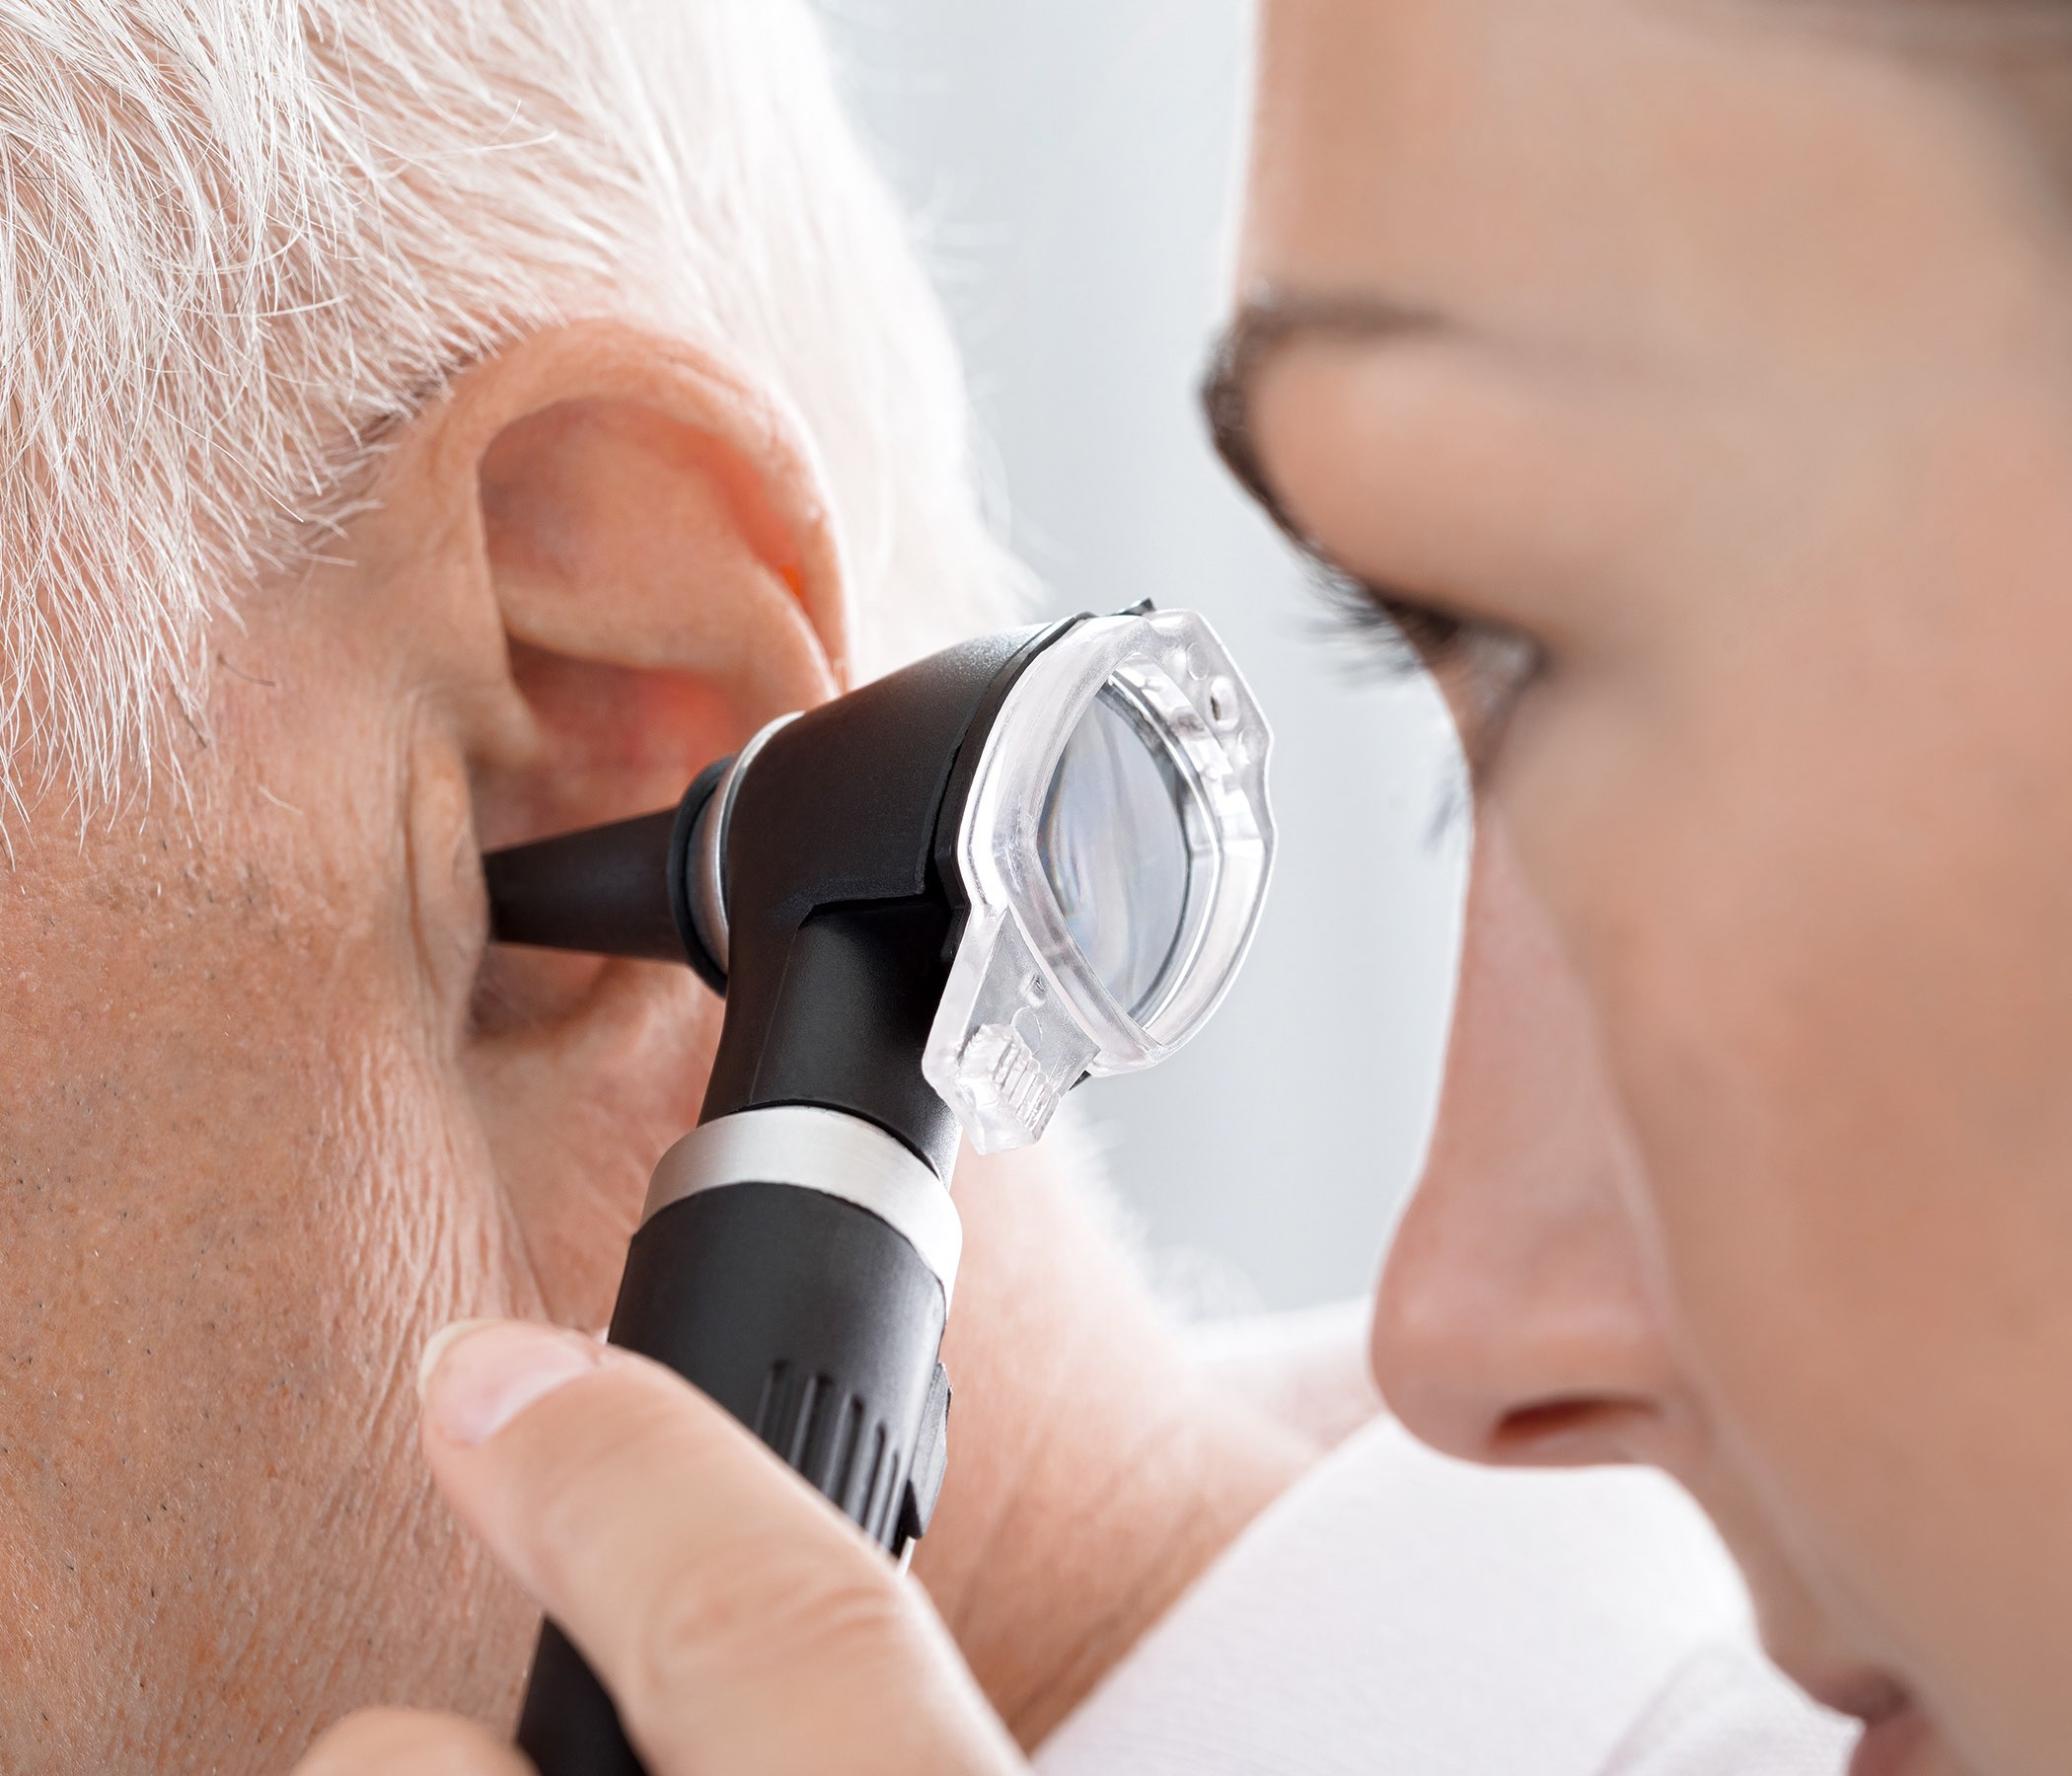 Female Doctor Examining Patient's Ear - stock photo Close-up Of Female Doctor Examining Patient's Ear With Otoscope